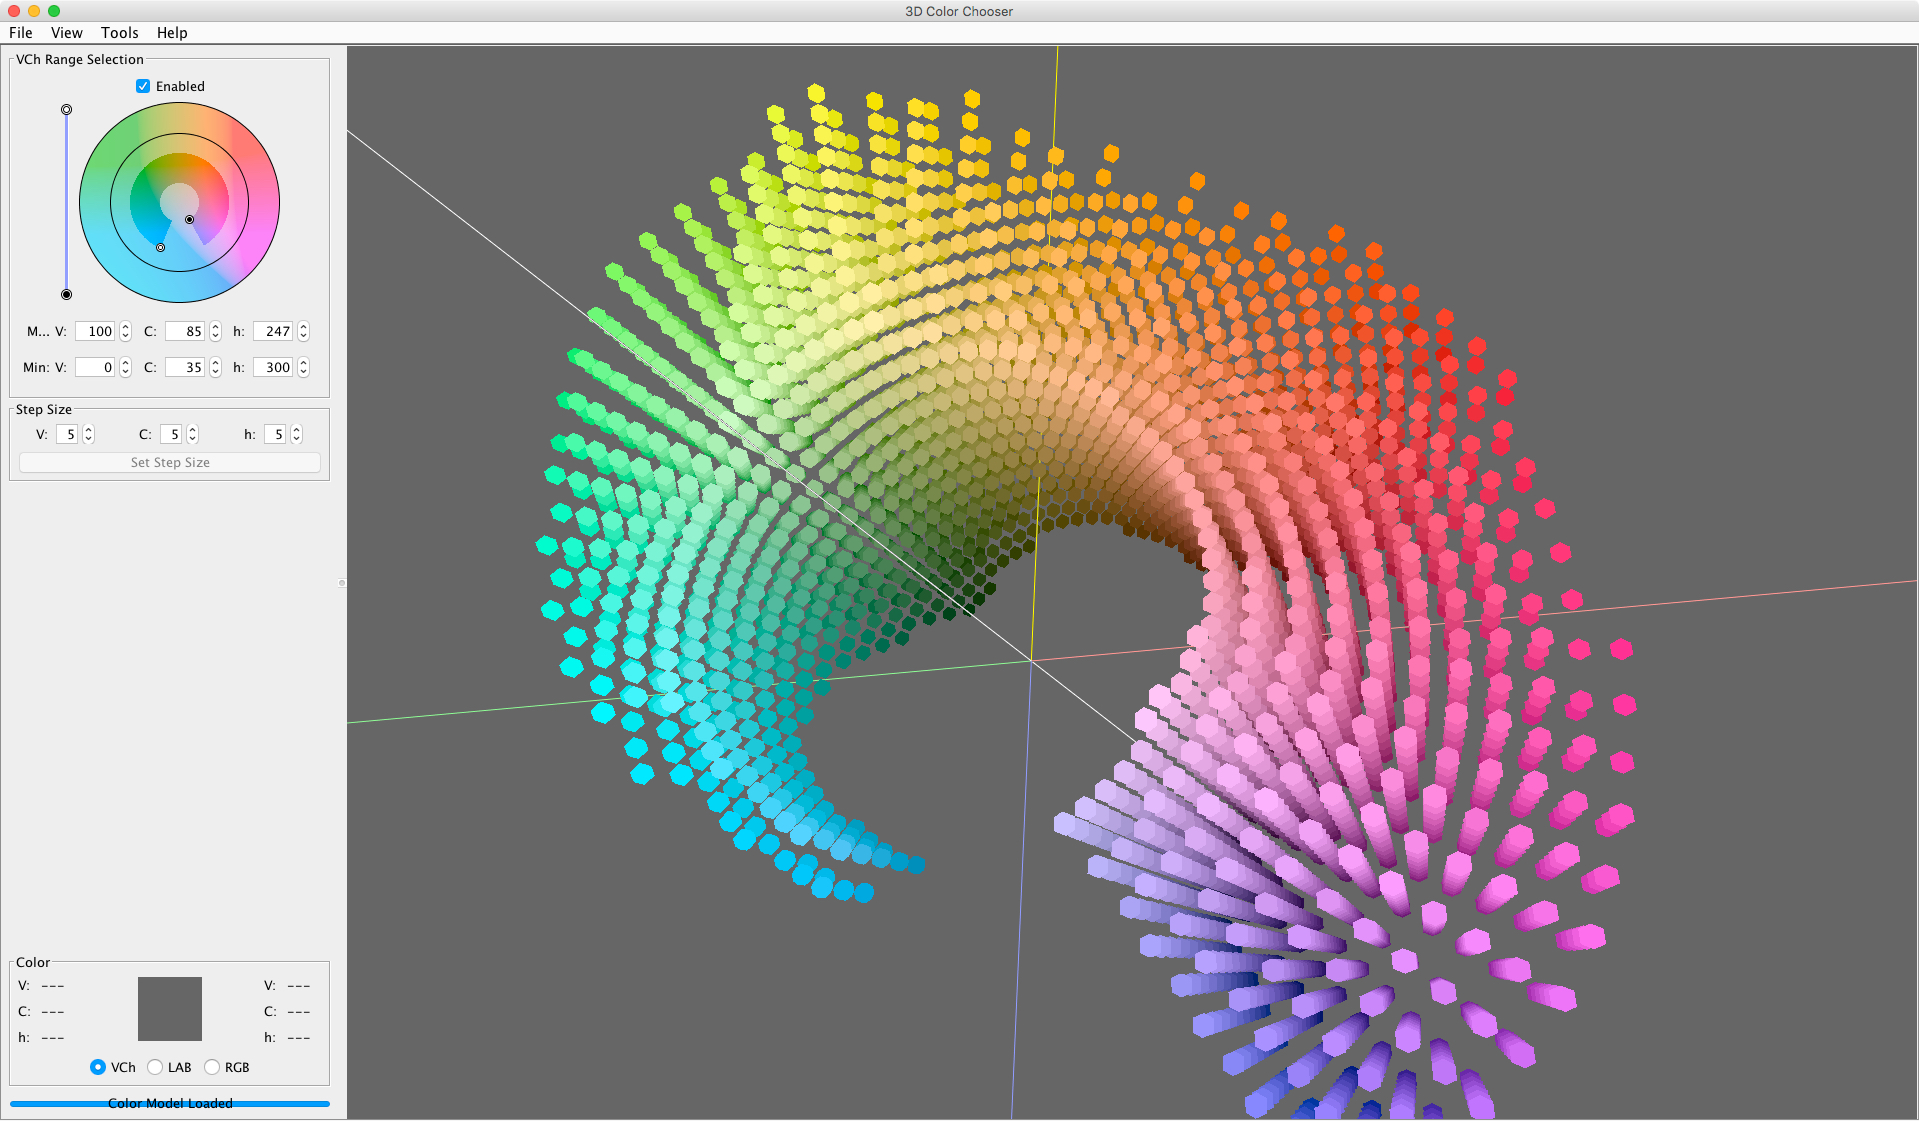 My Mapping Color software GUI, used in the analysis, quantification, modeling, and manipulation of color in images, image sequences, and data sets.